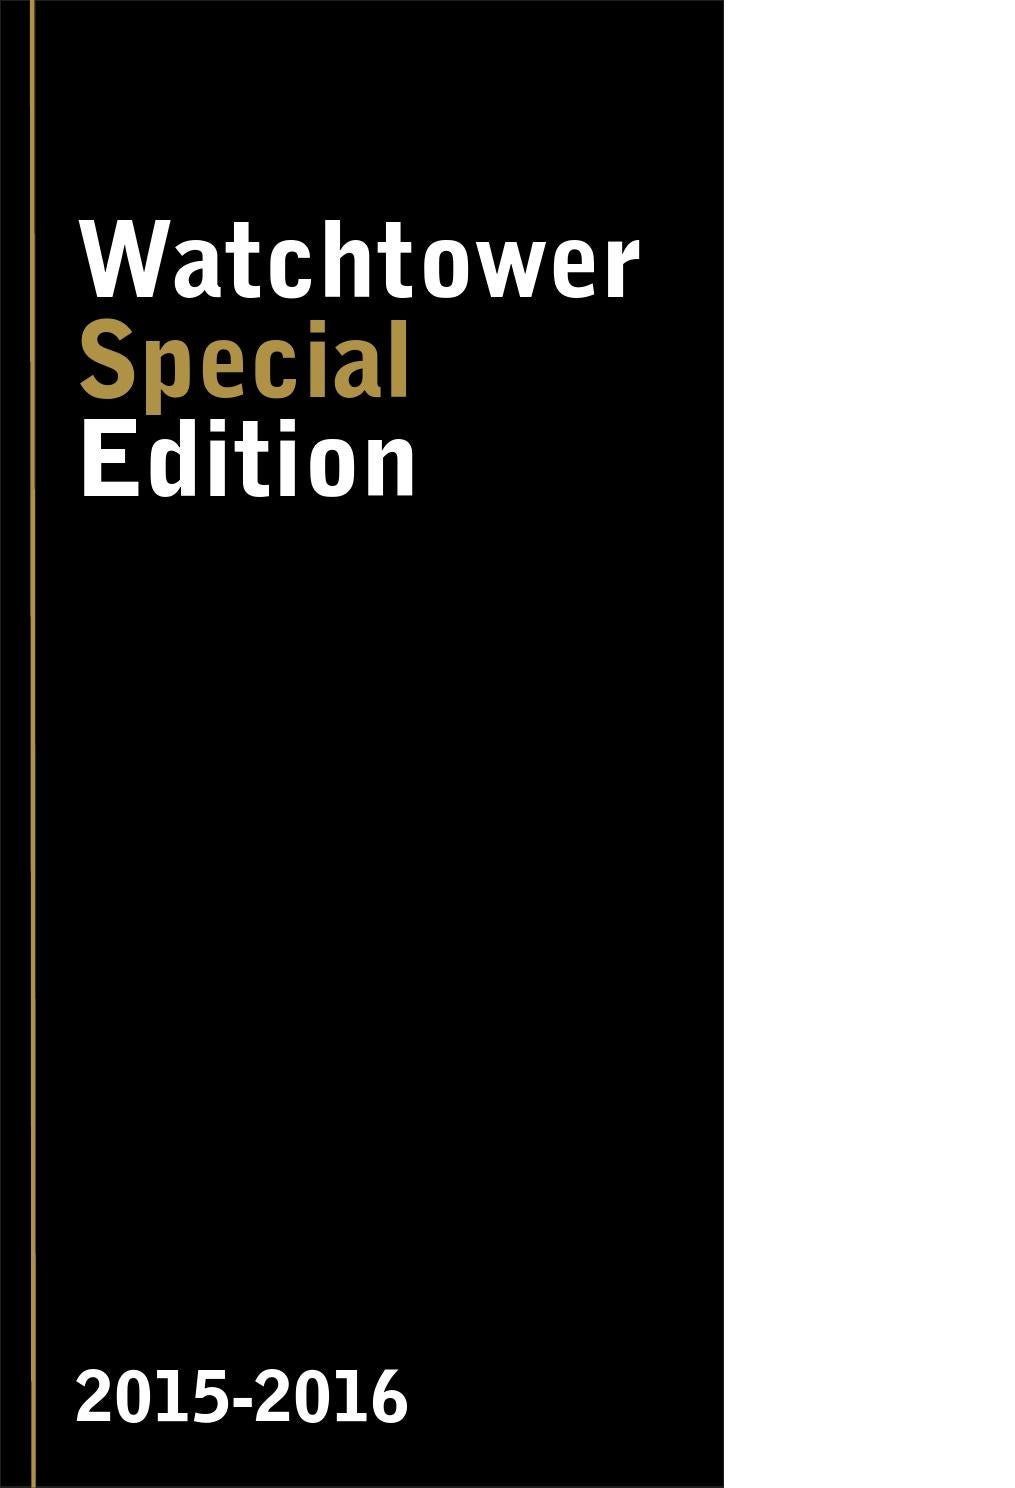 Watchtower special edition by Highlights - issuu